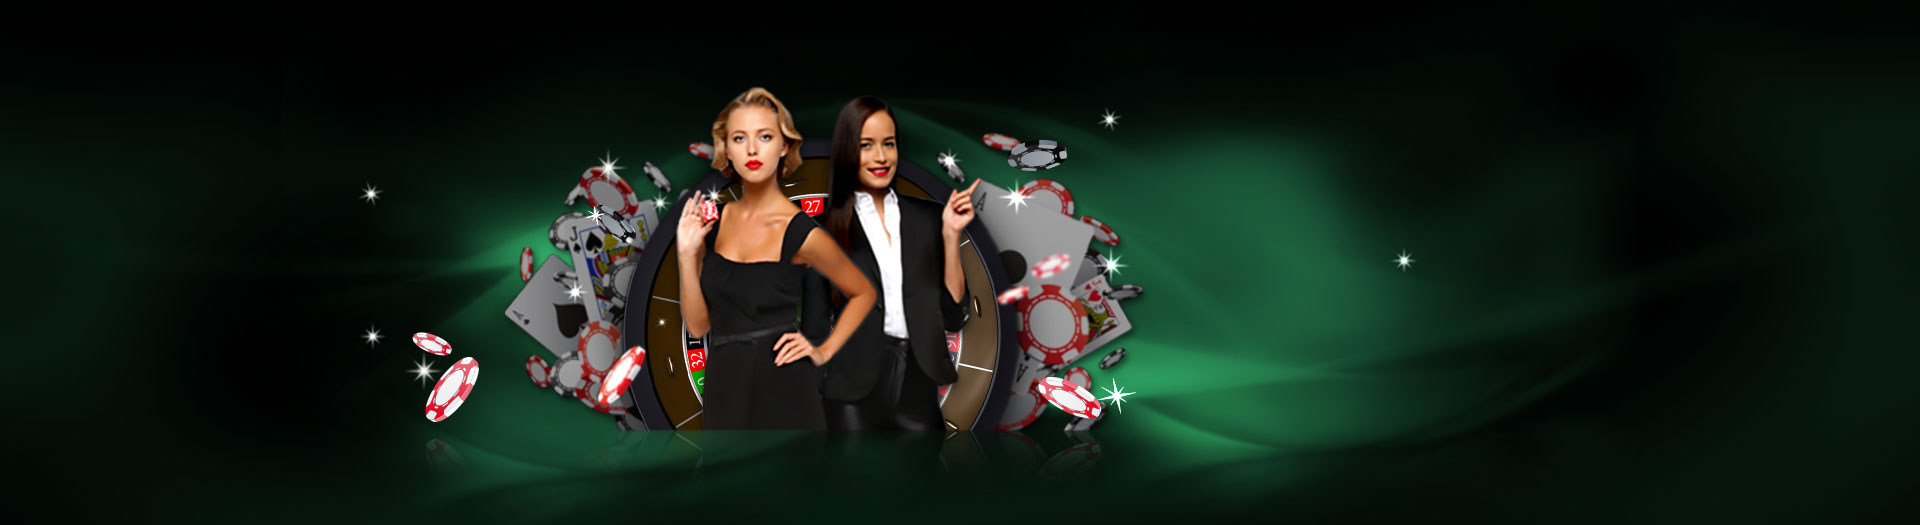 free casino games play online without downloading